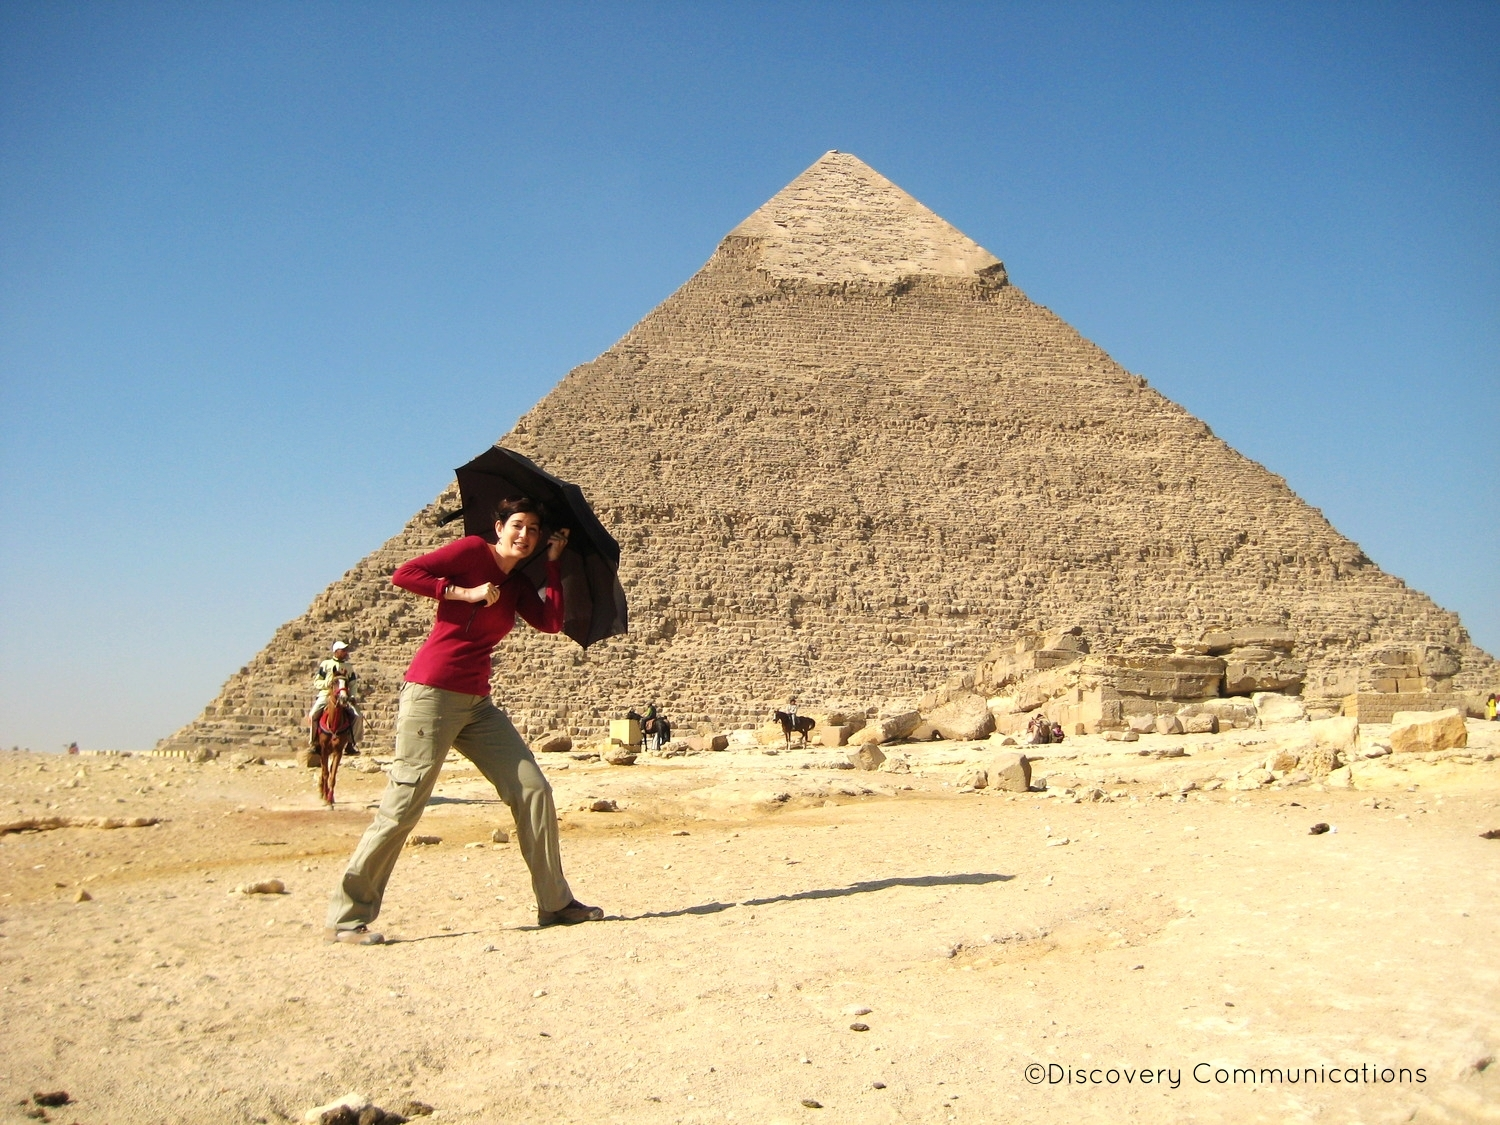 Having fun on location in front of the pyramid of Khafre!